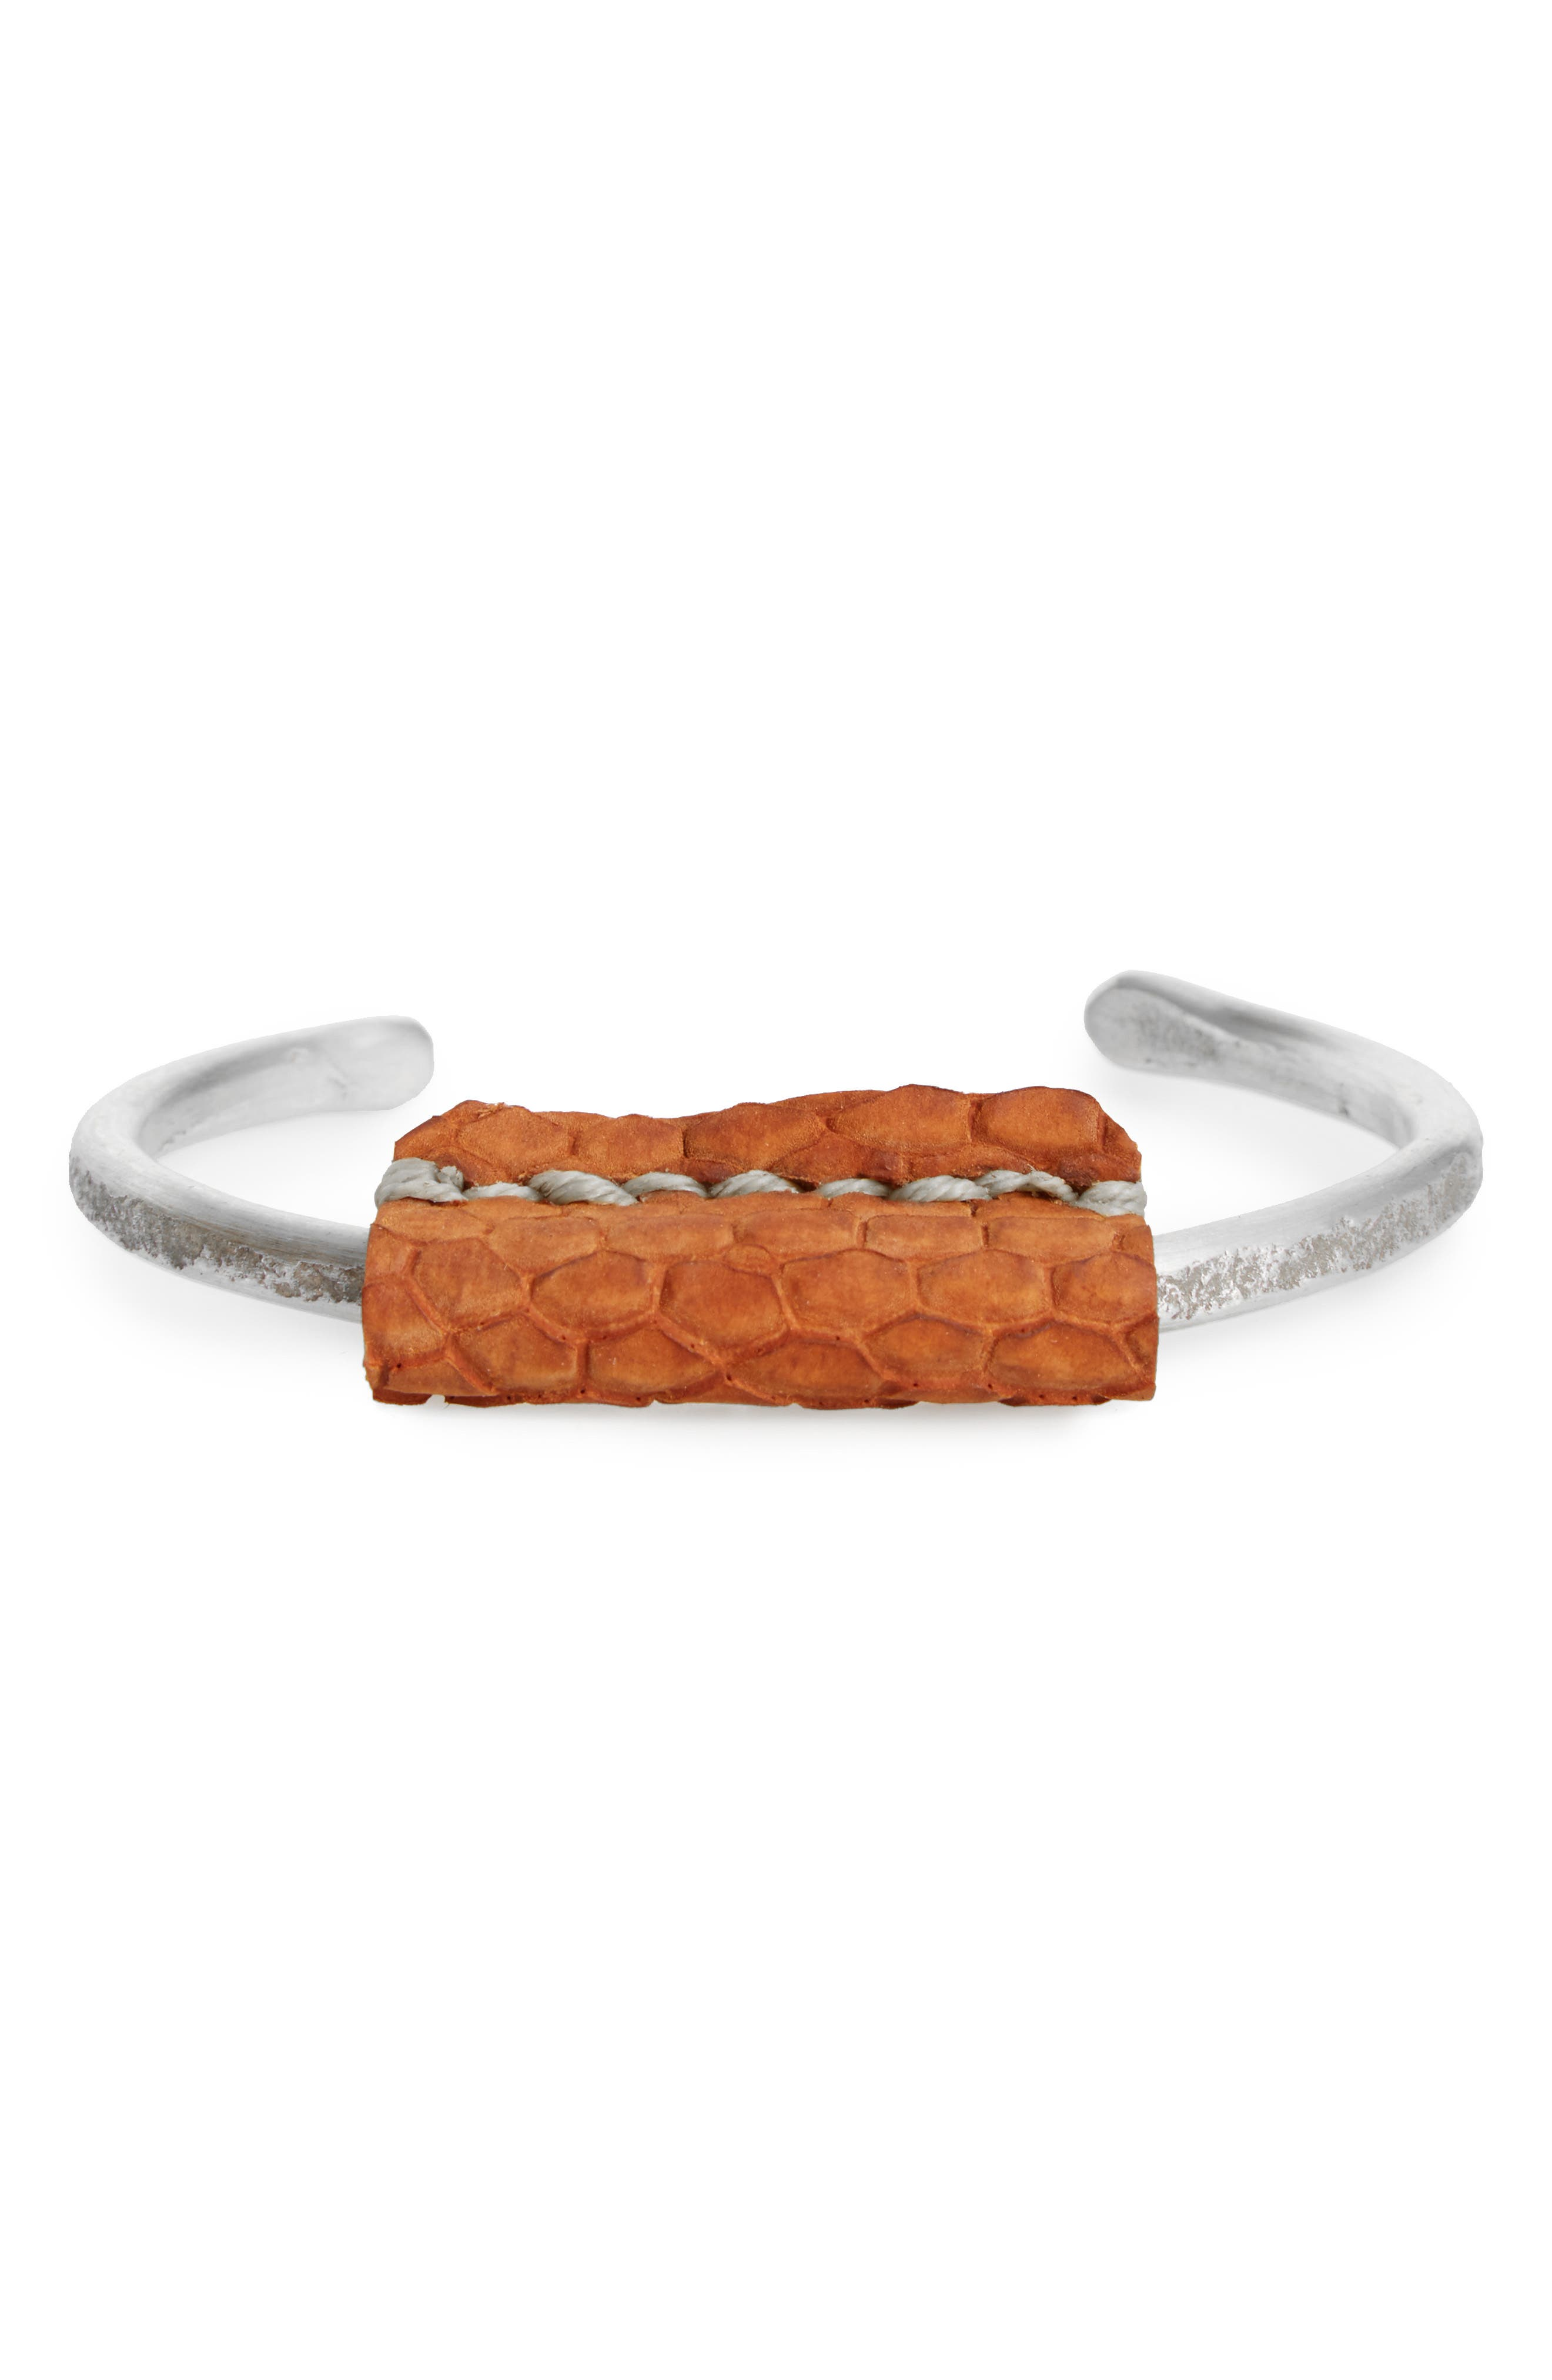 Cause & Effect Hammer Sterling Silver Cuff Bracelet,                         Main,                         color, Silver/ Tan